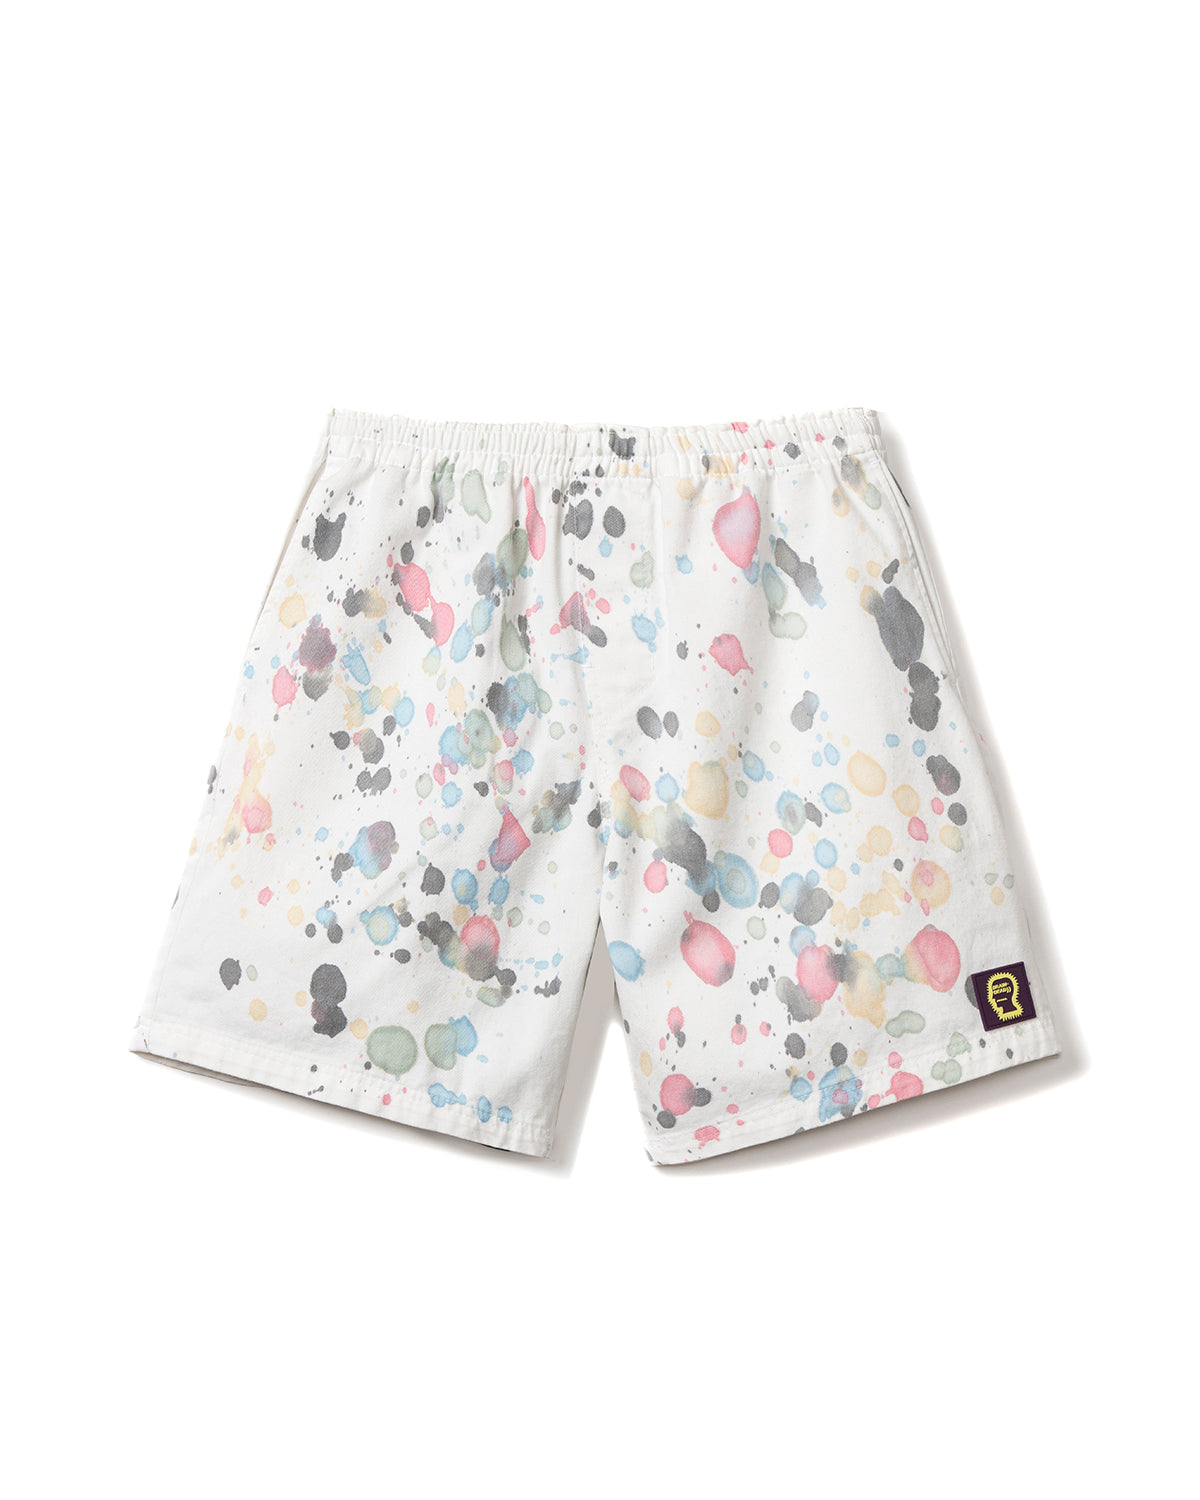 Beach Shorts - Multi Splatter Dye - Brain Dead